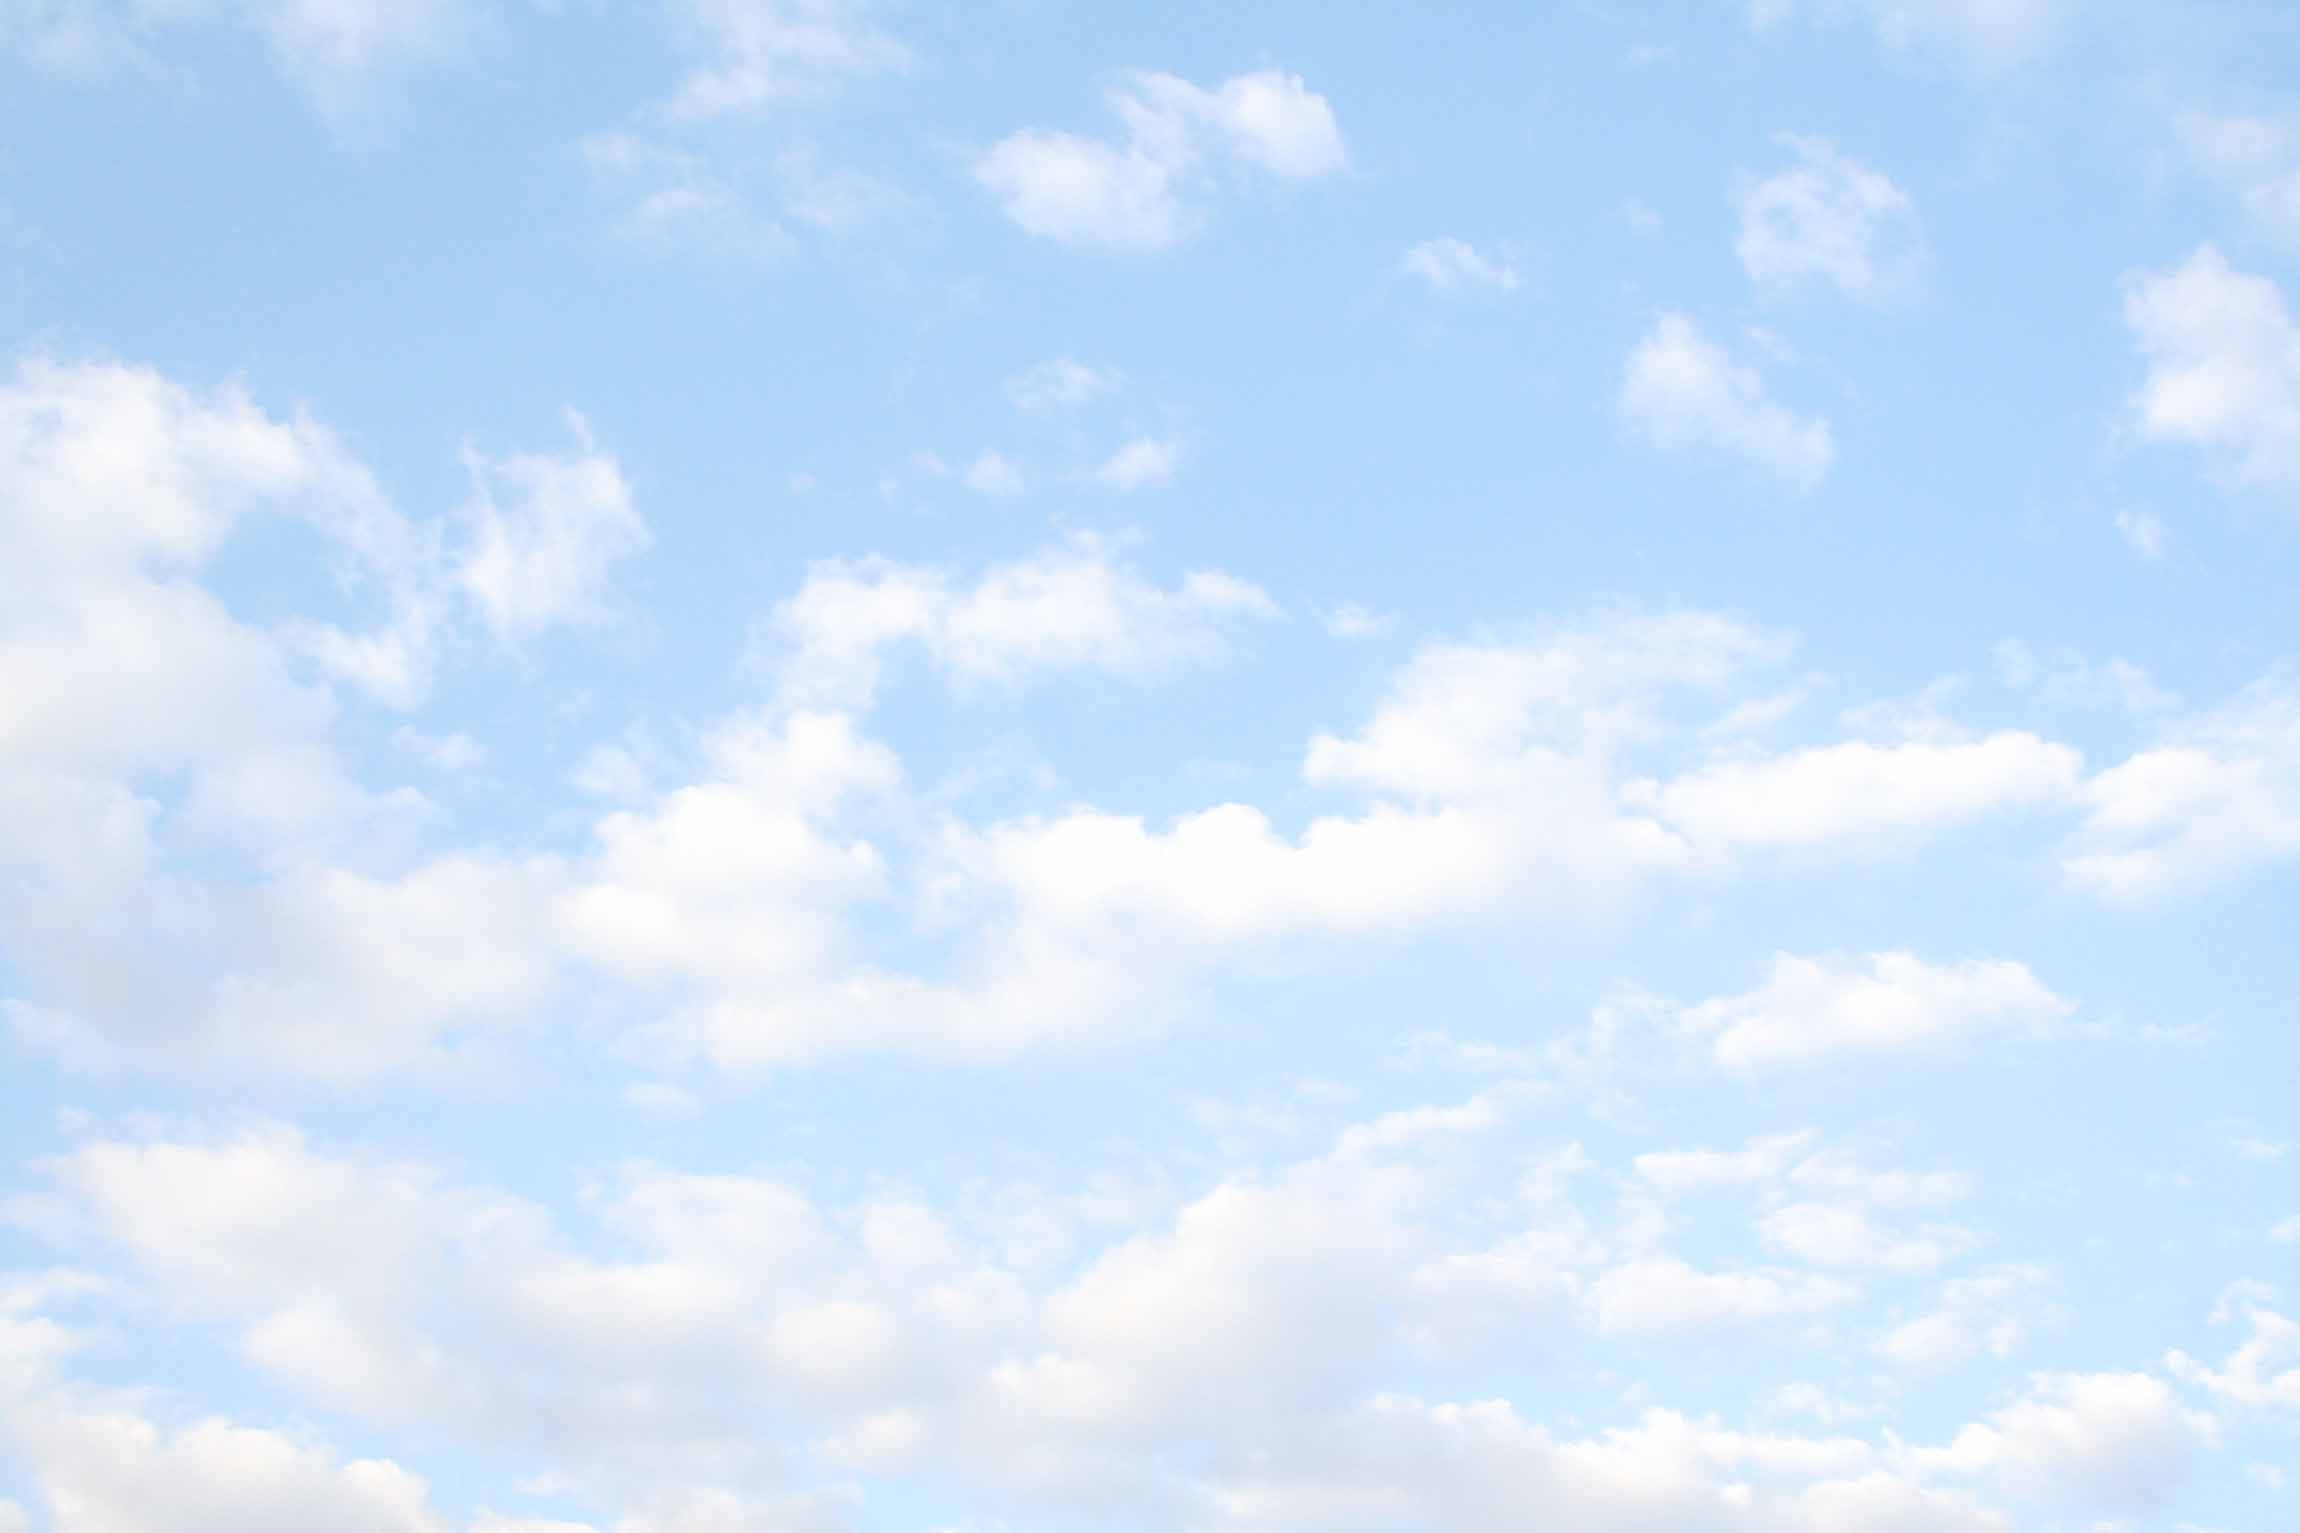 iStock_000002290296_Largeclouds1